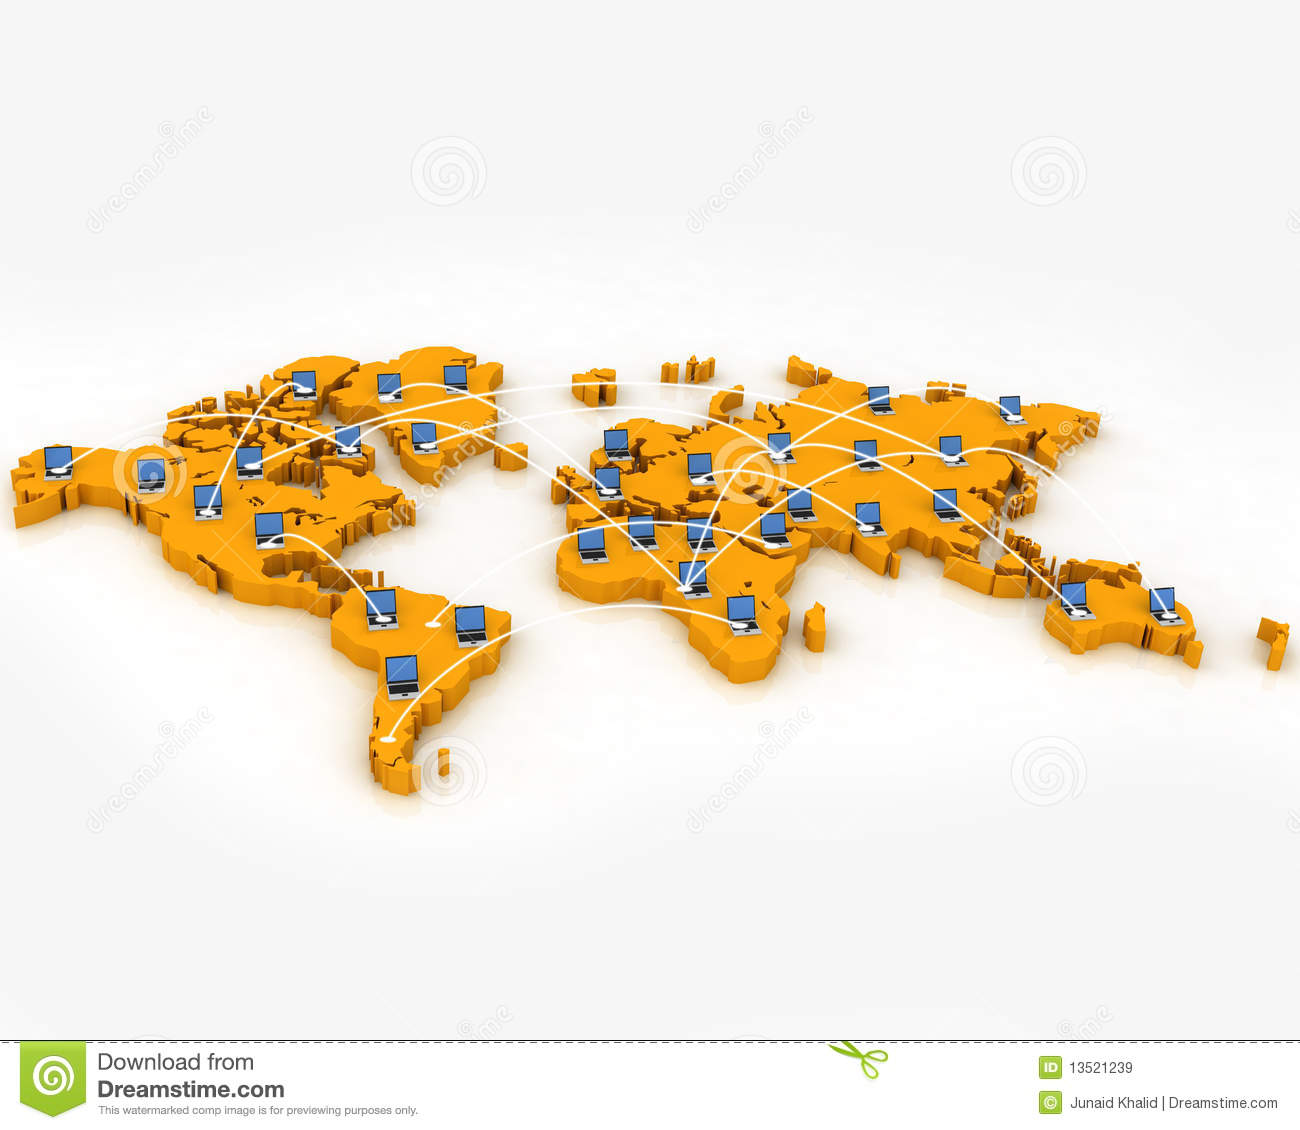 Computer network on world map stock illustration illustration of computer network on world map gumiabroncs Gallery